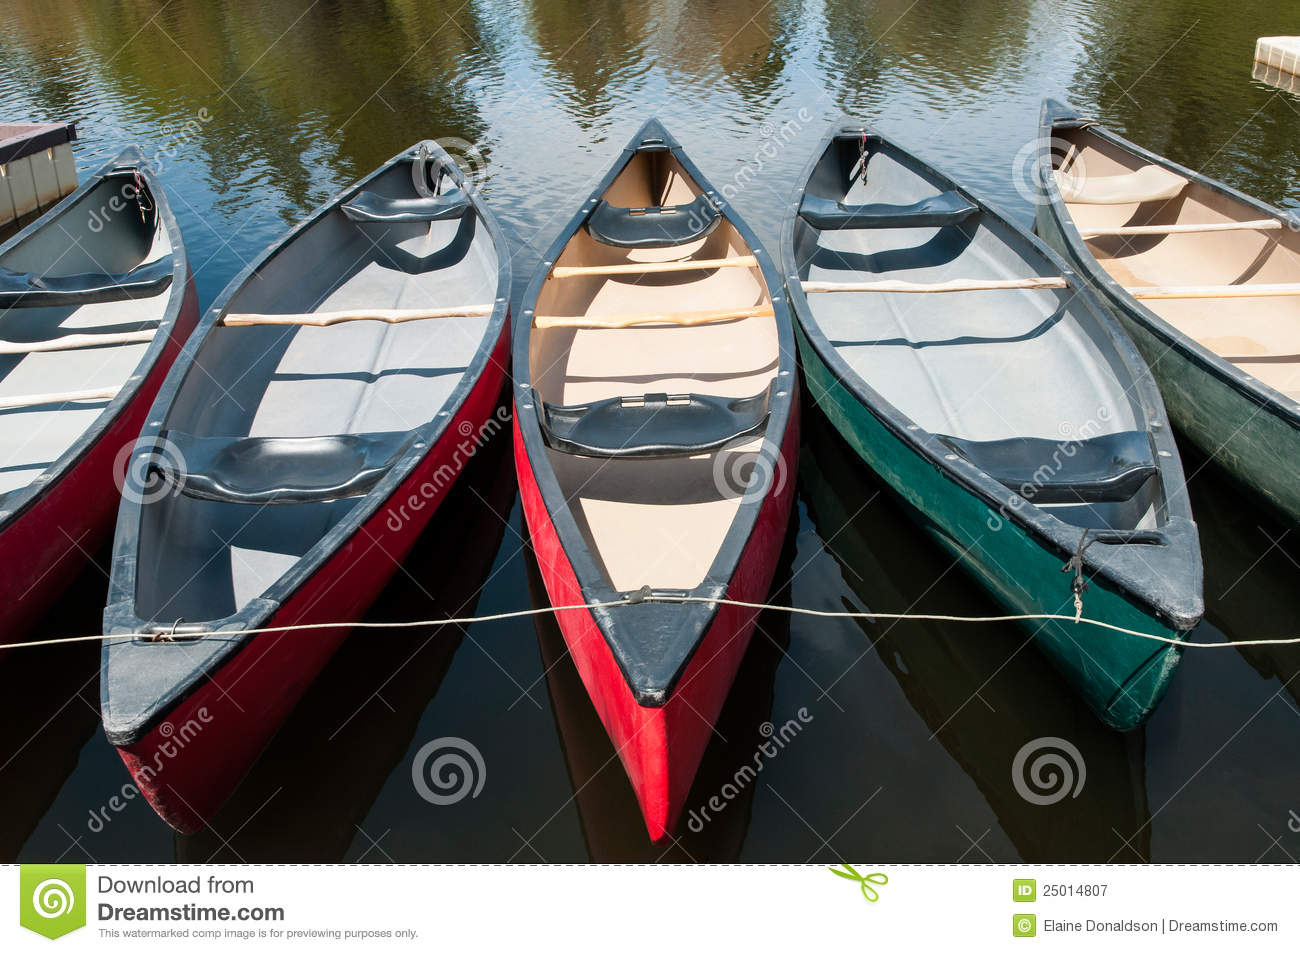 Canoes старо